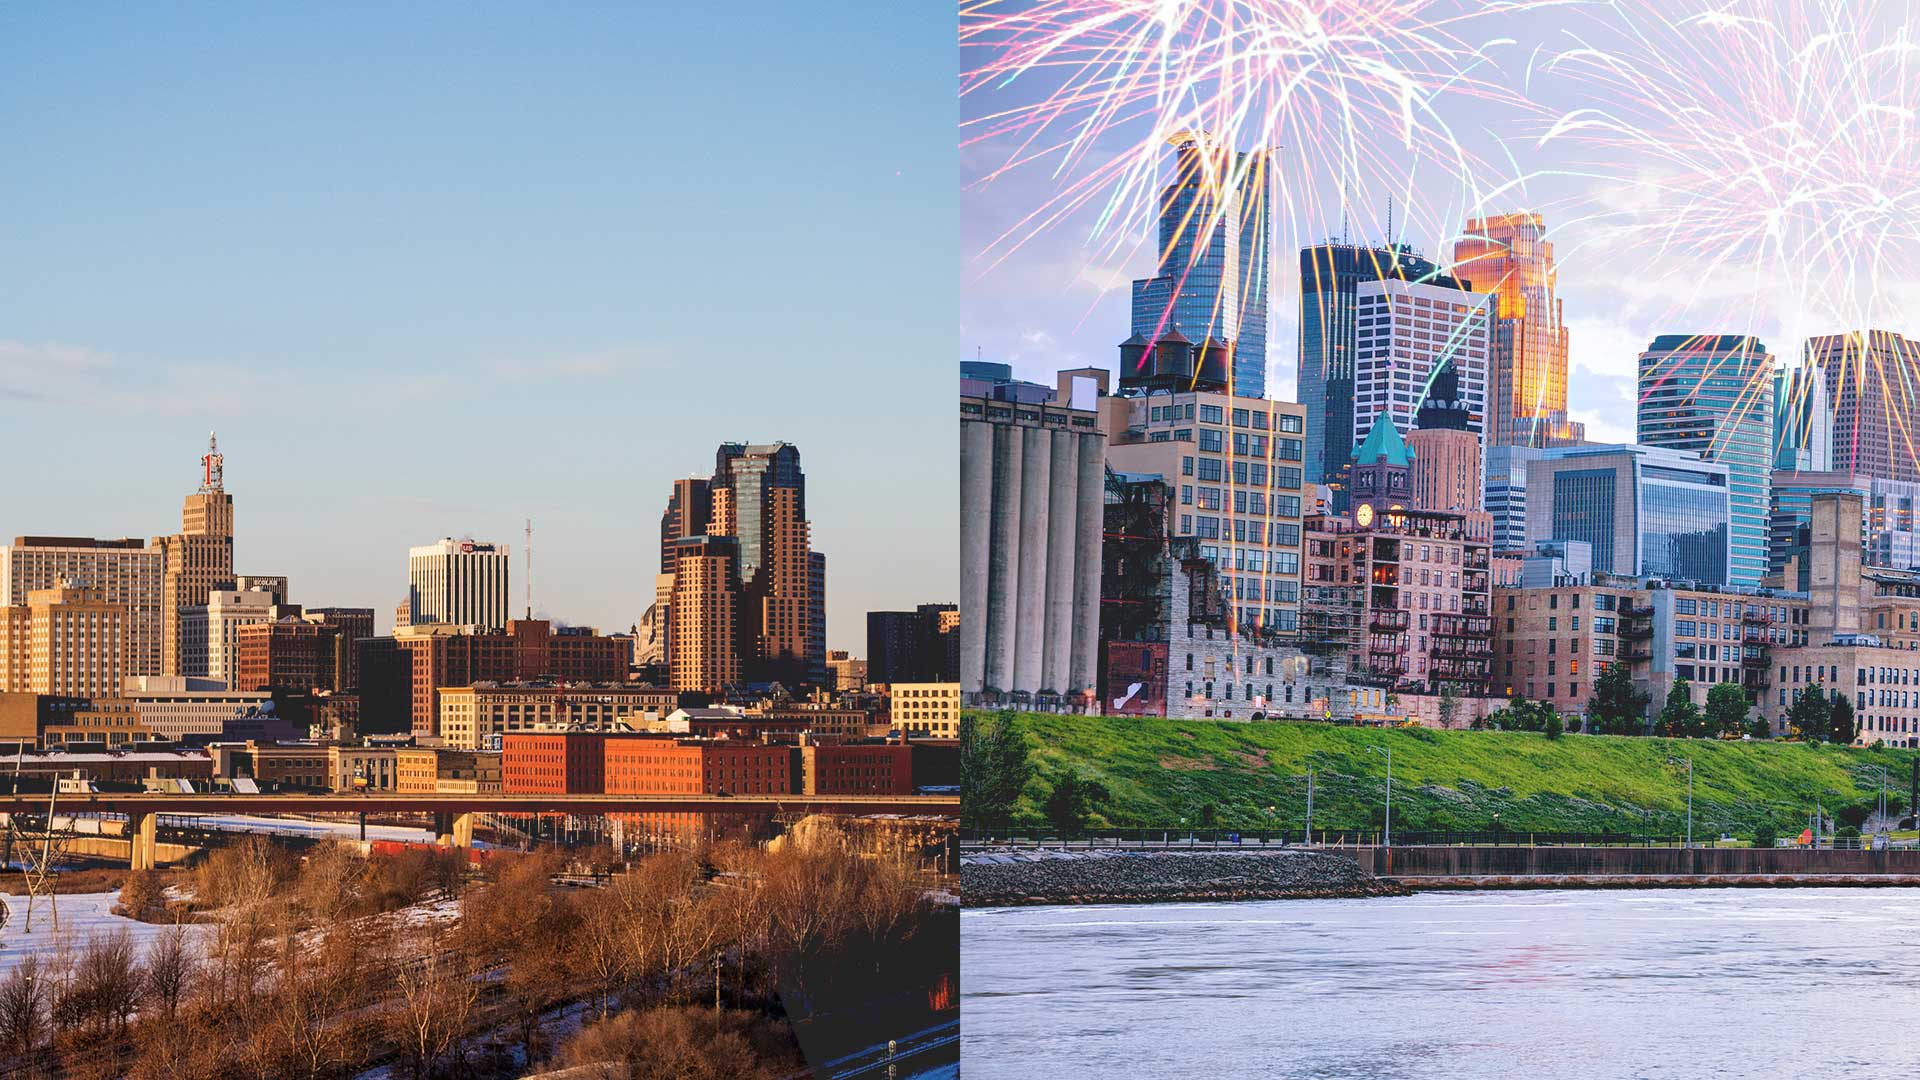 St.-Paul-Files-Noise-Complaint-on-Neighboring-Minneapolis-Fireworks.jpg